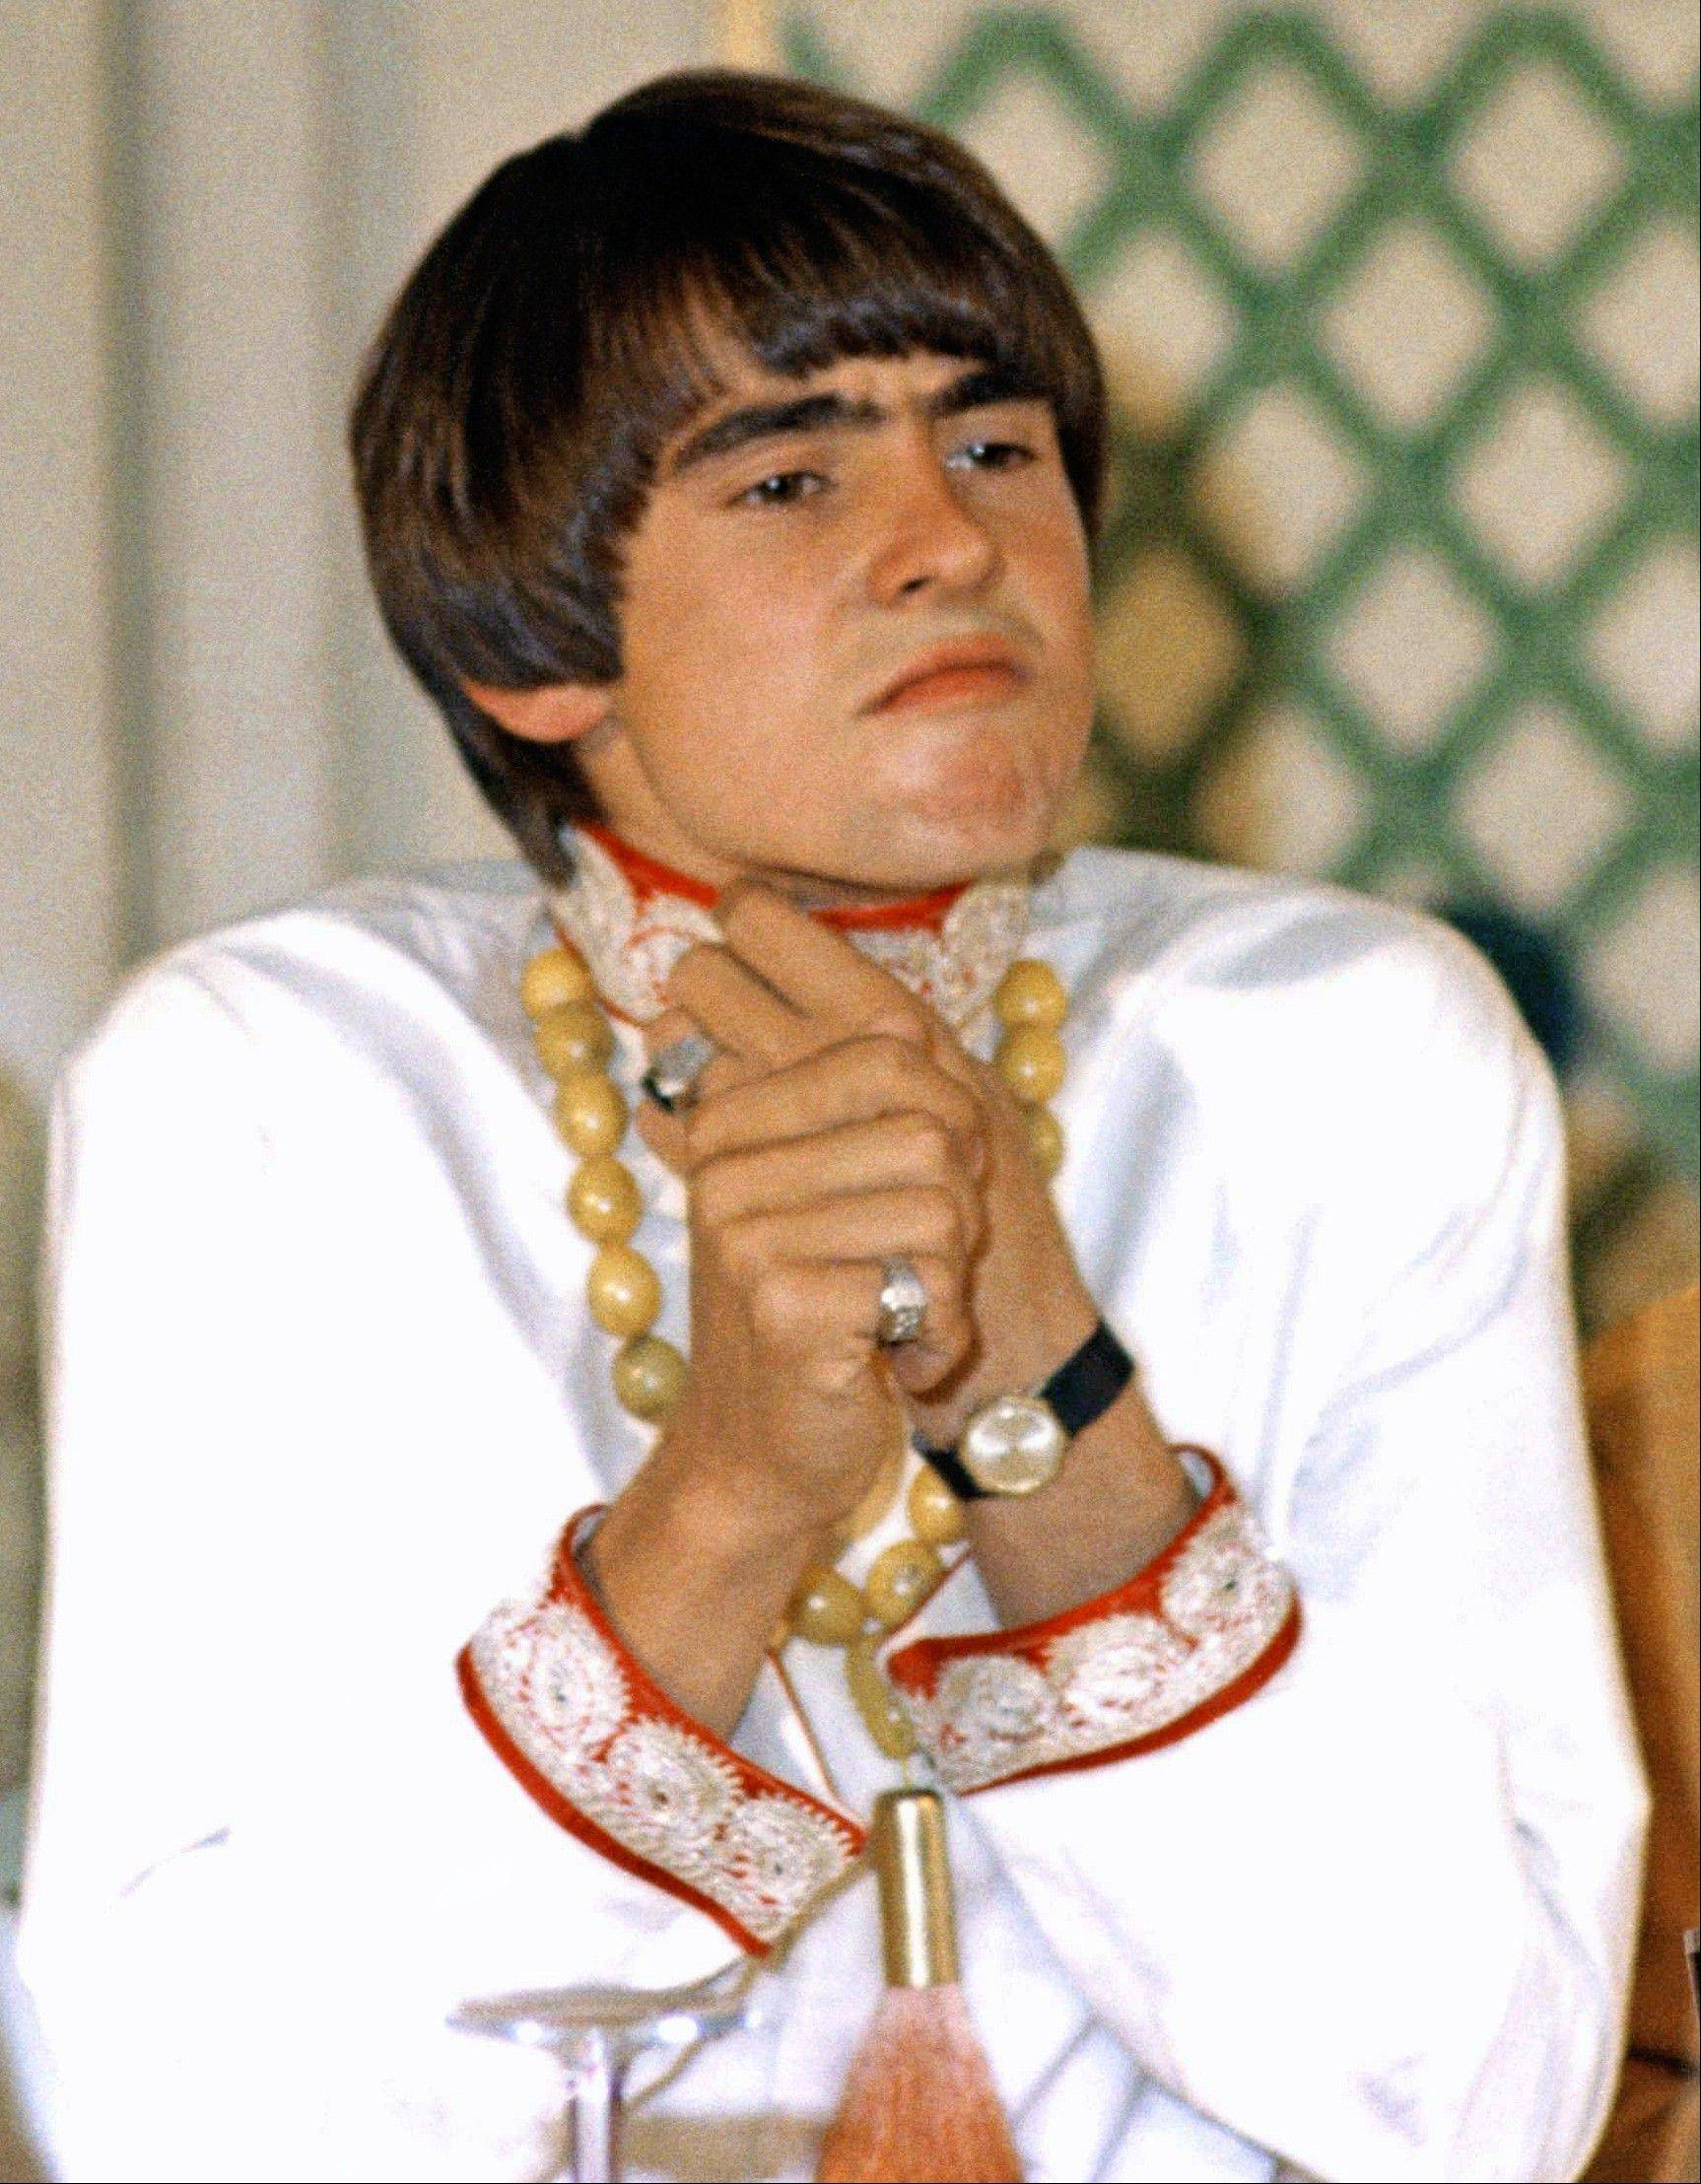 In this July 6, 1967, file photo Davey Jones of Monkees singing group is shown at press conference at Warwick Hotel in New York City.